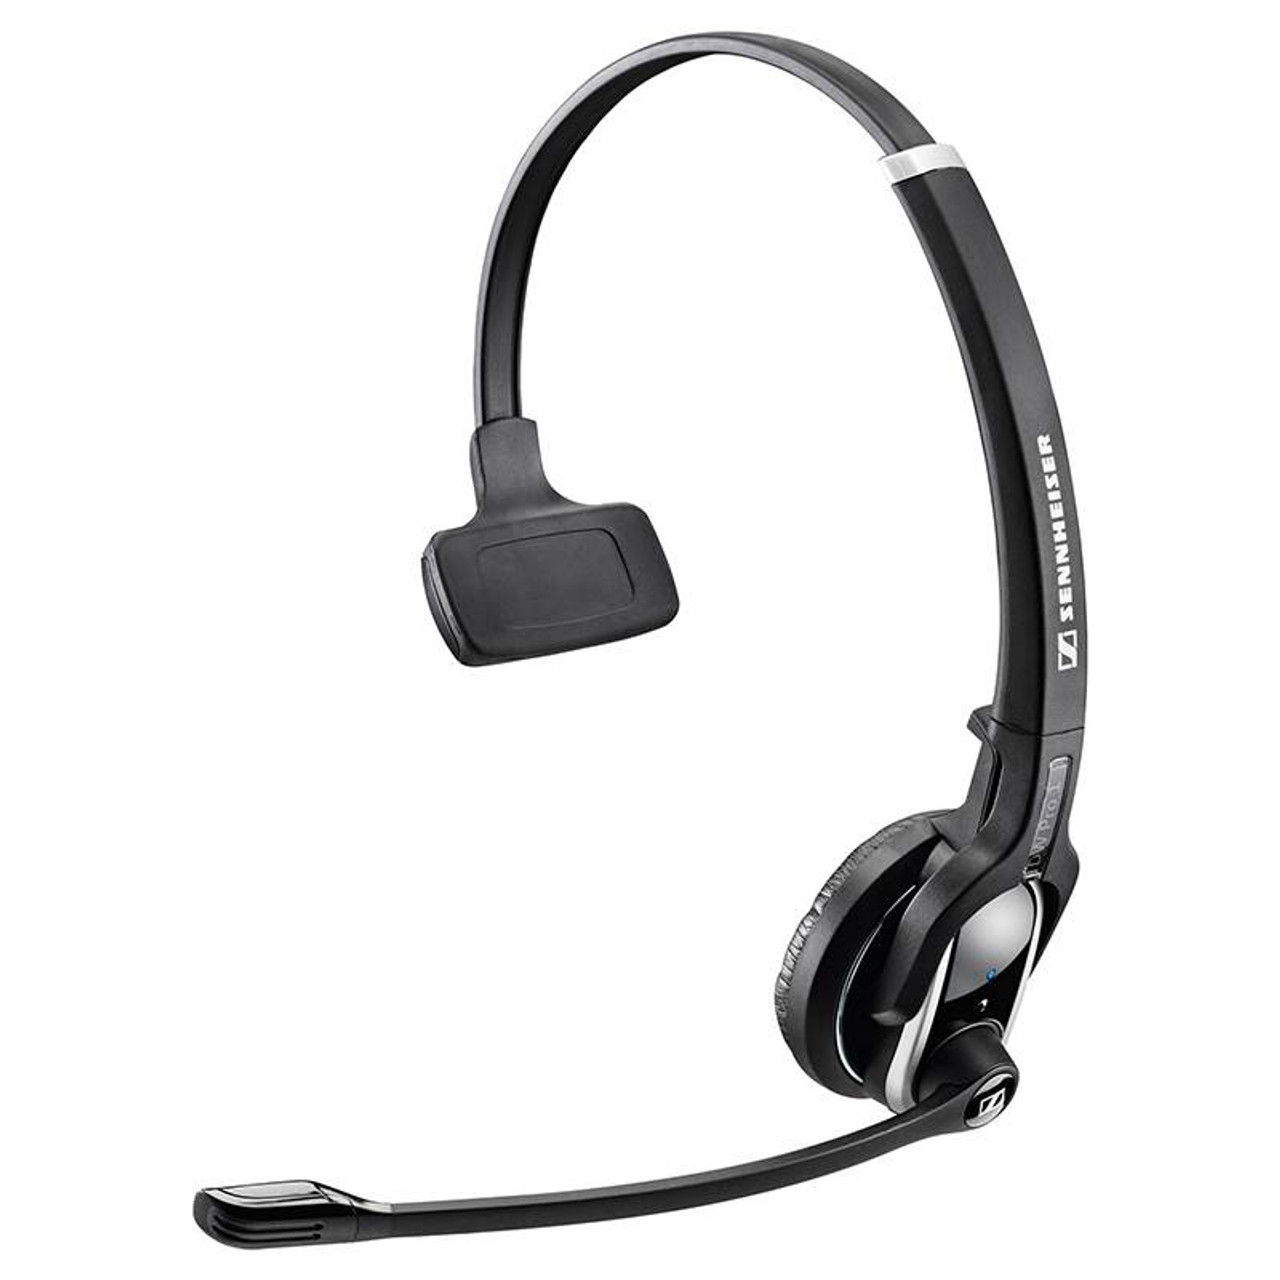 Image for Sennheiser DW 20 HS Replacement Headset CX Computer Superstore